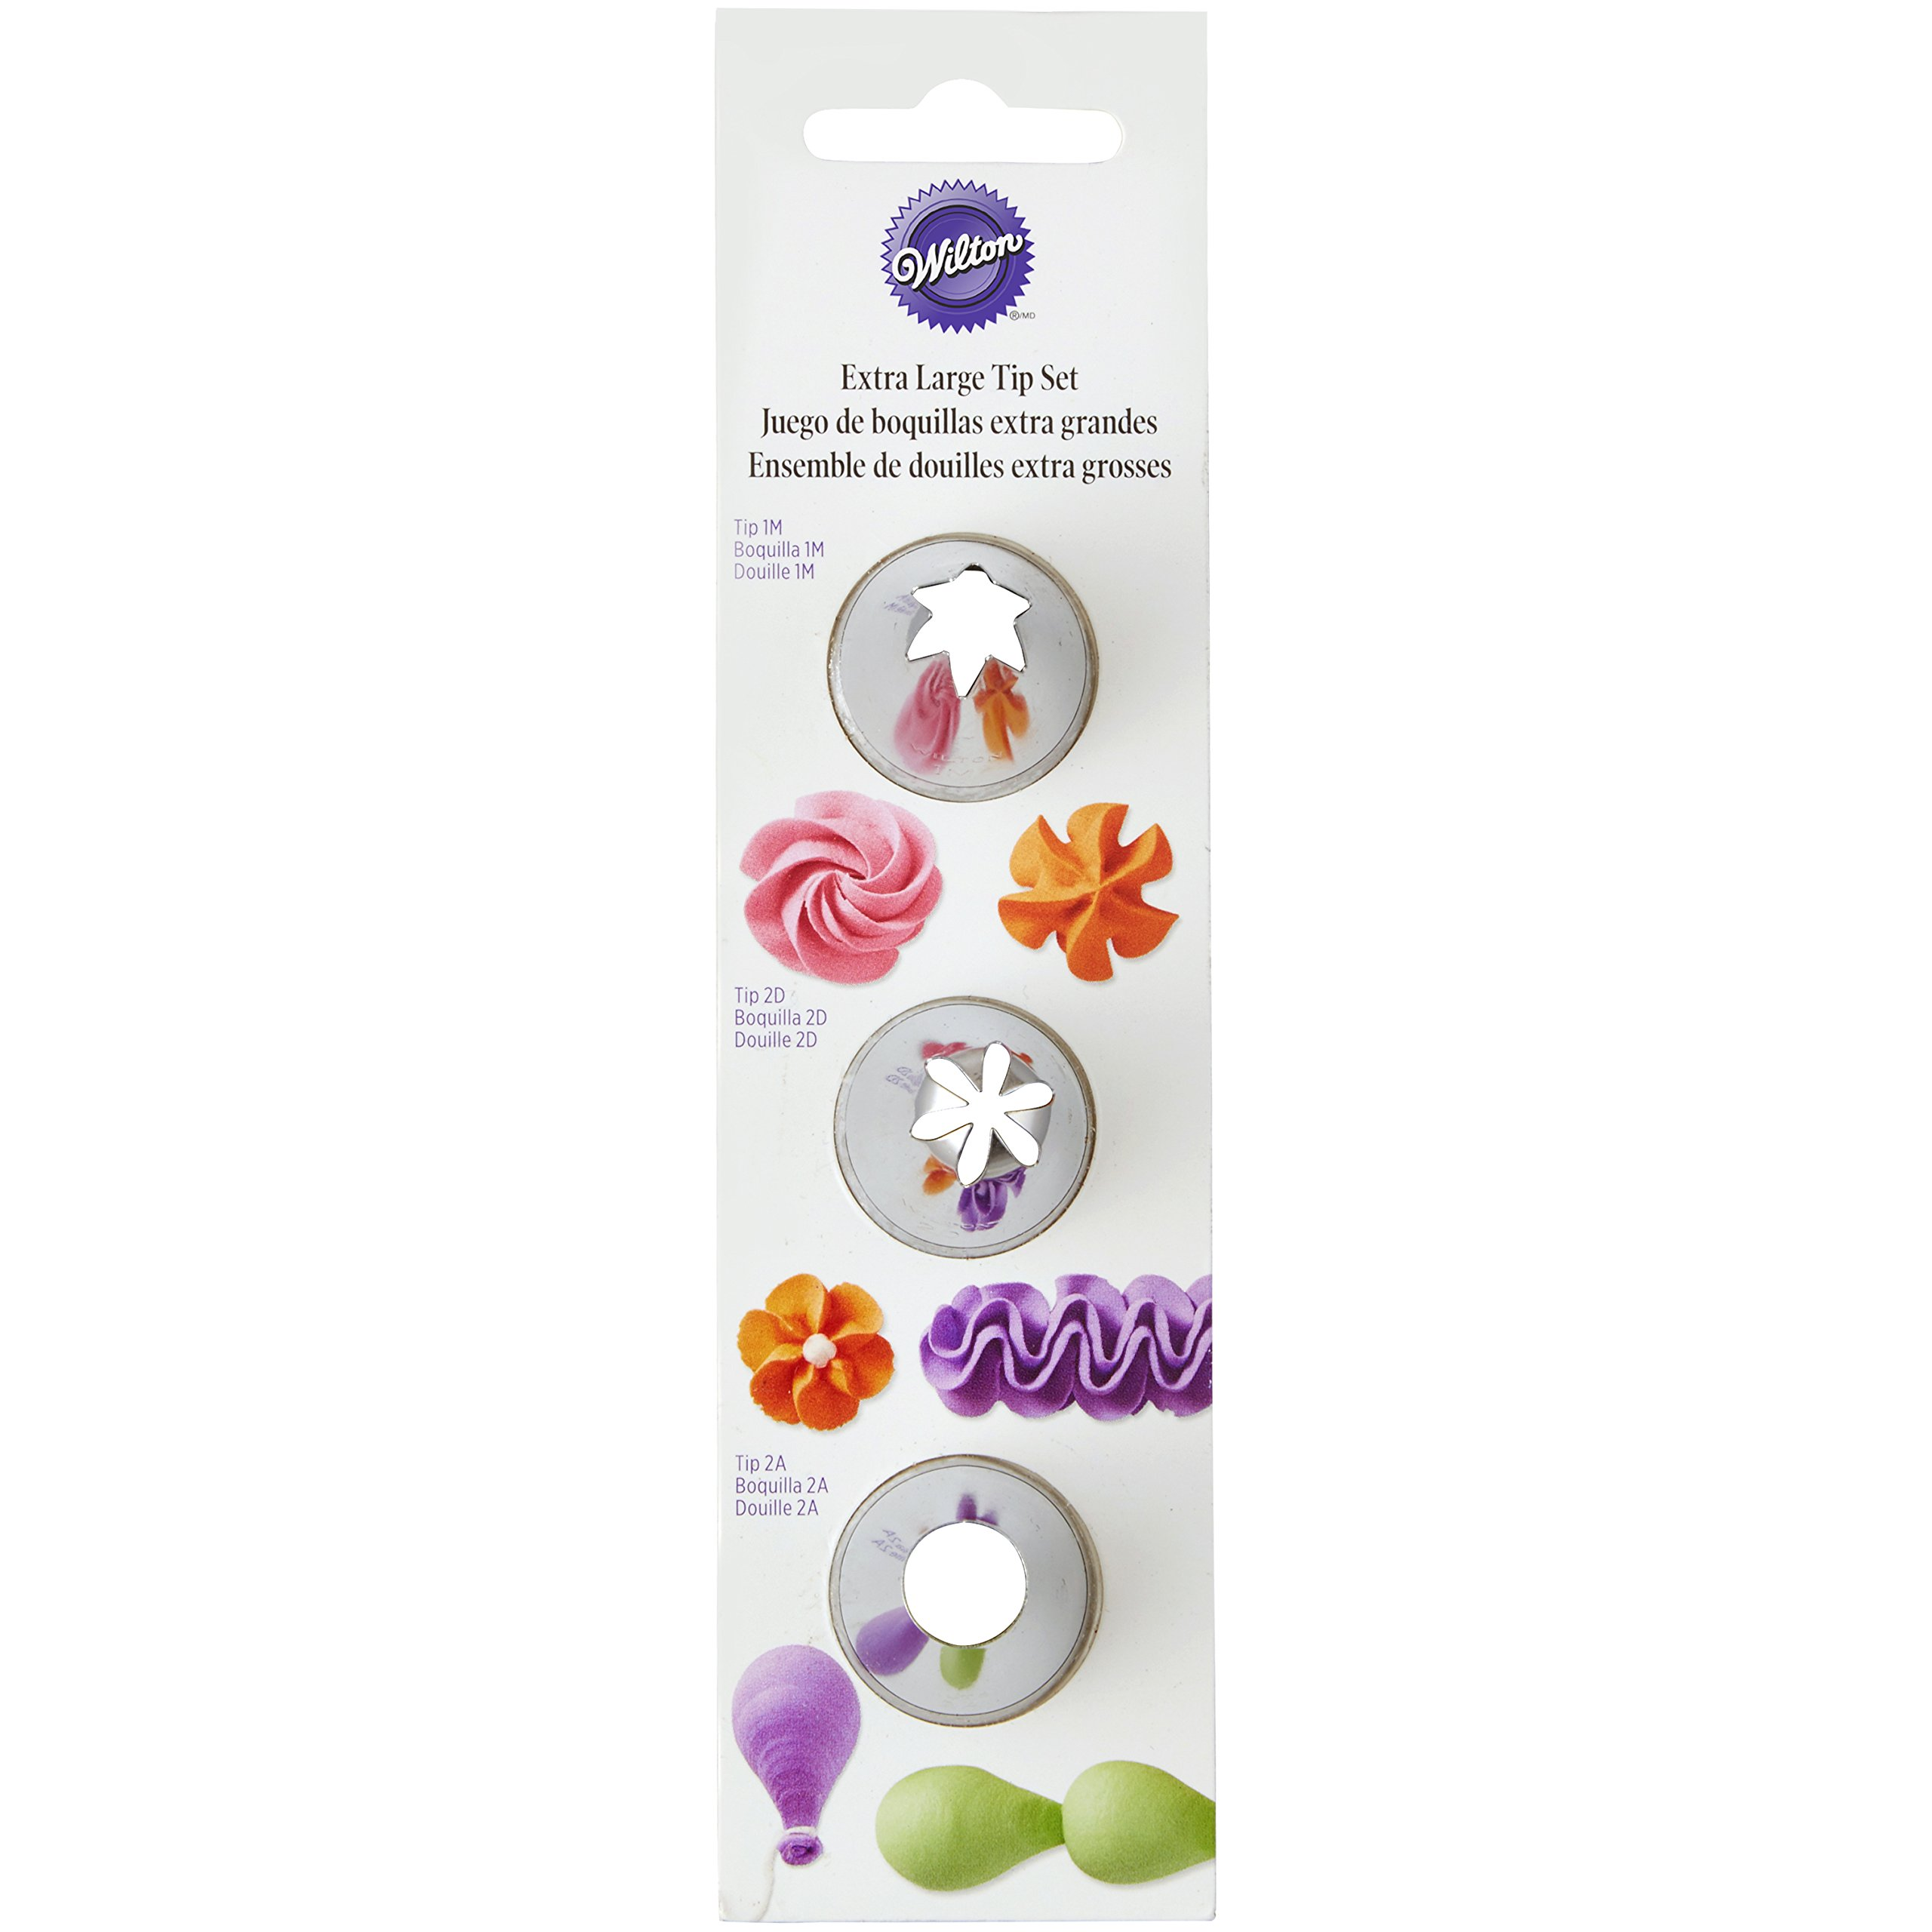 Wilton Icing/Piping Tip Set, XL, 3 pieces